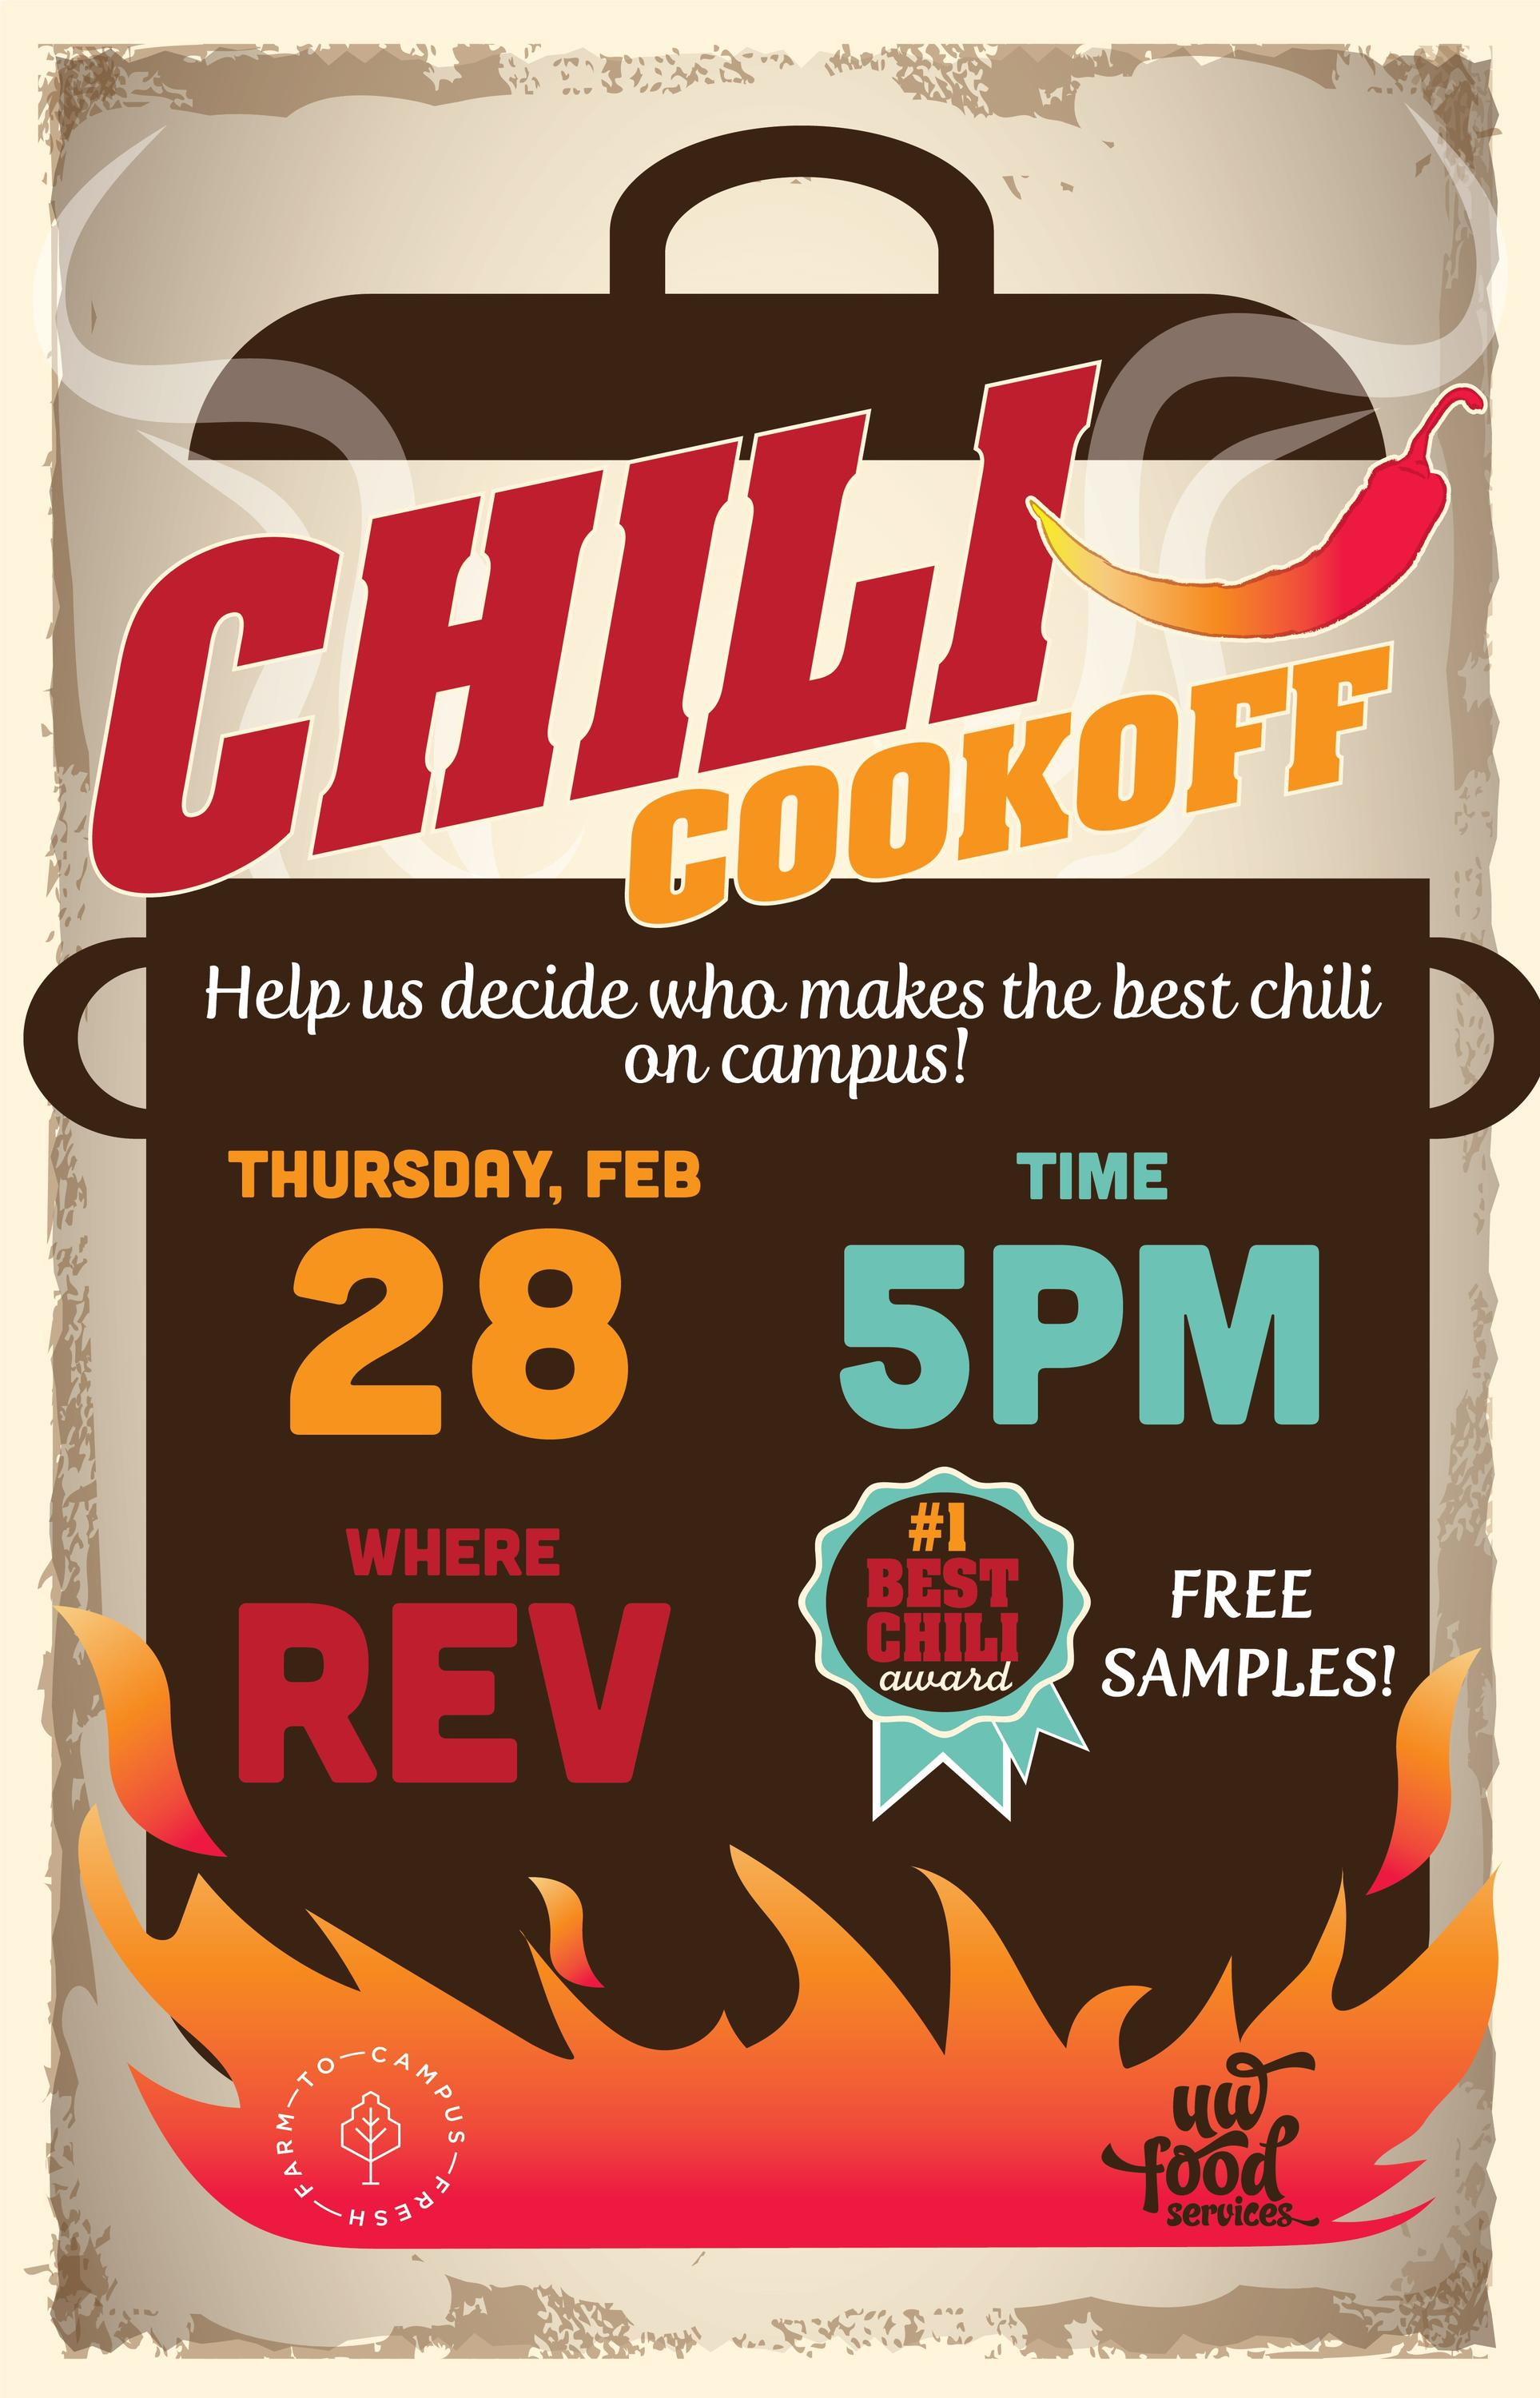 Chili Cookoff is at 5pm on February 28 at REV